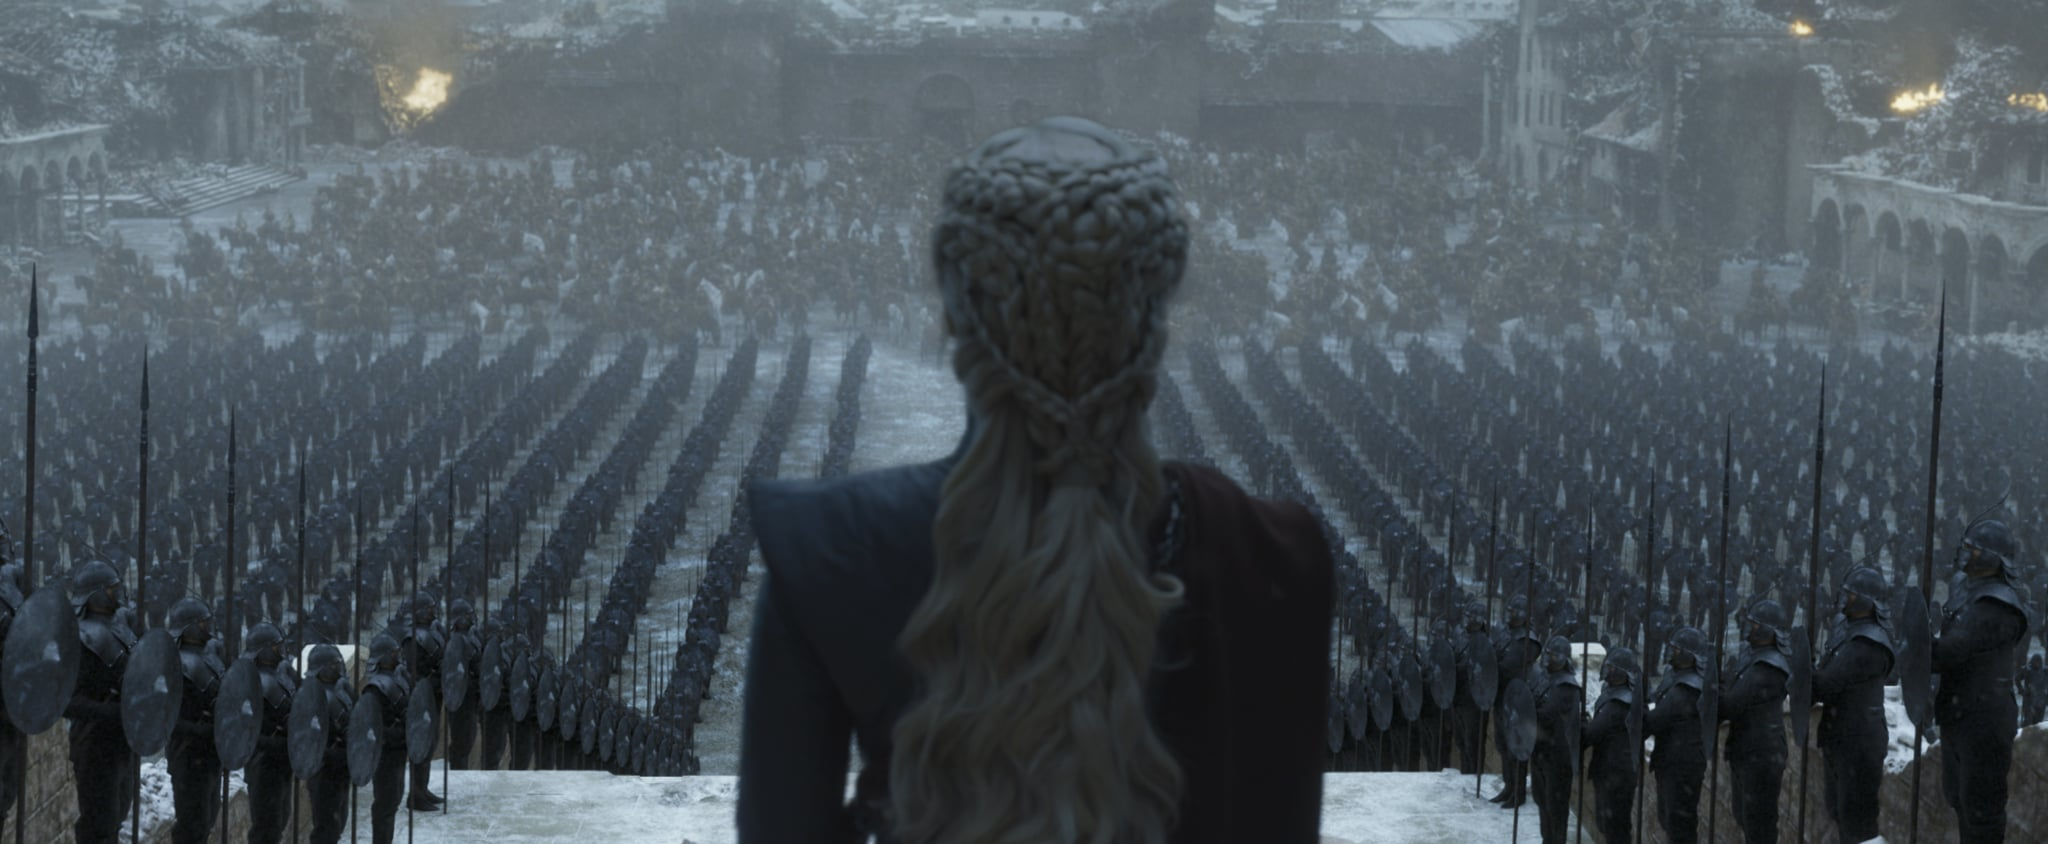 How Does Game of Thrones End?